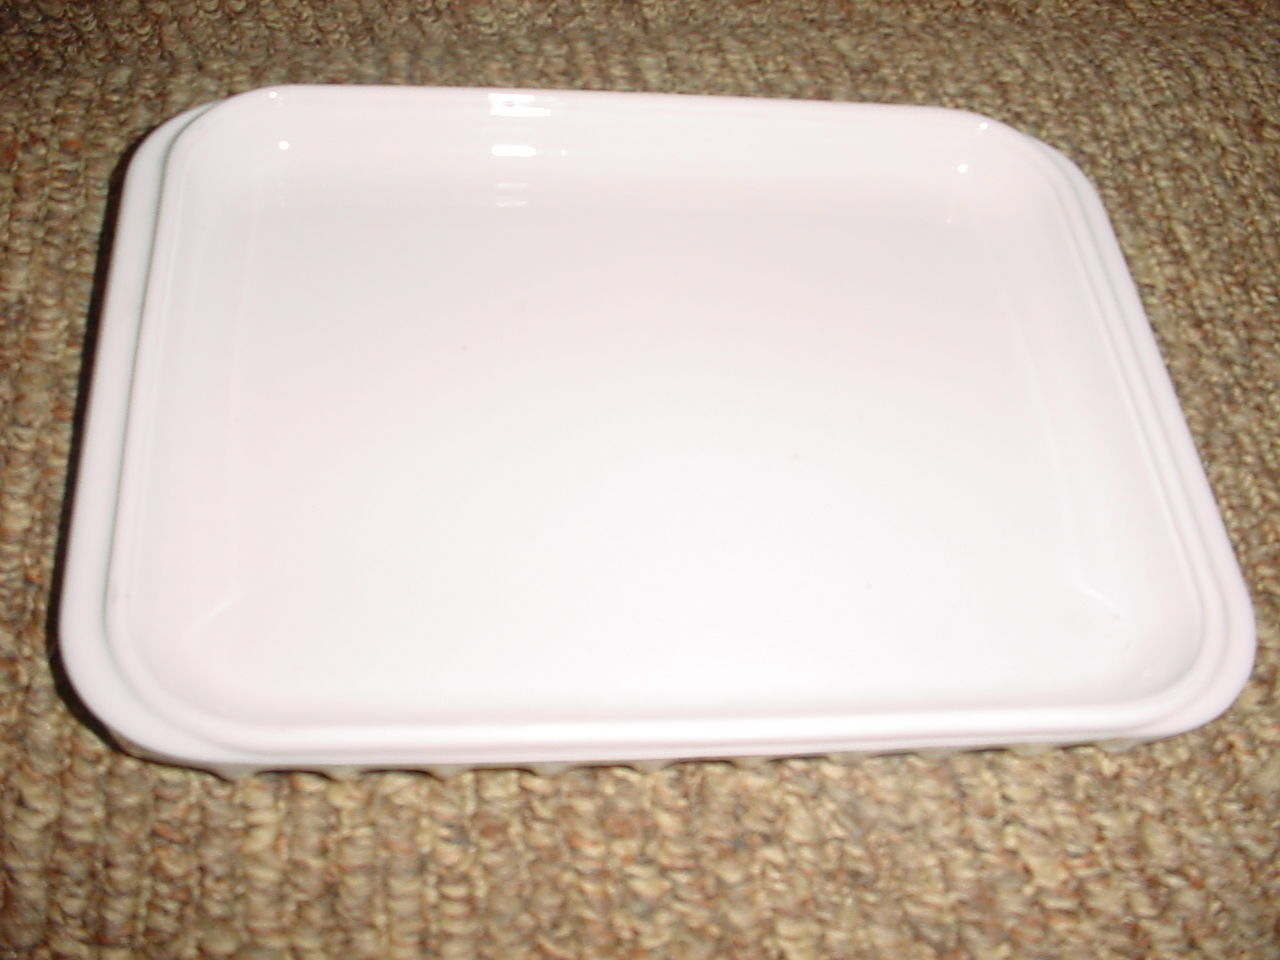 Primary image for CORNING WARE MR-1 WHITE MICROWAVE OVEN BROWNING RACK FREE USA SHIPPING